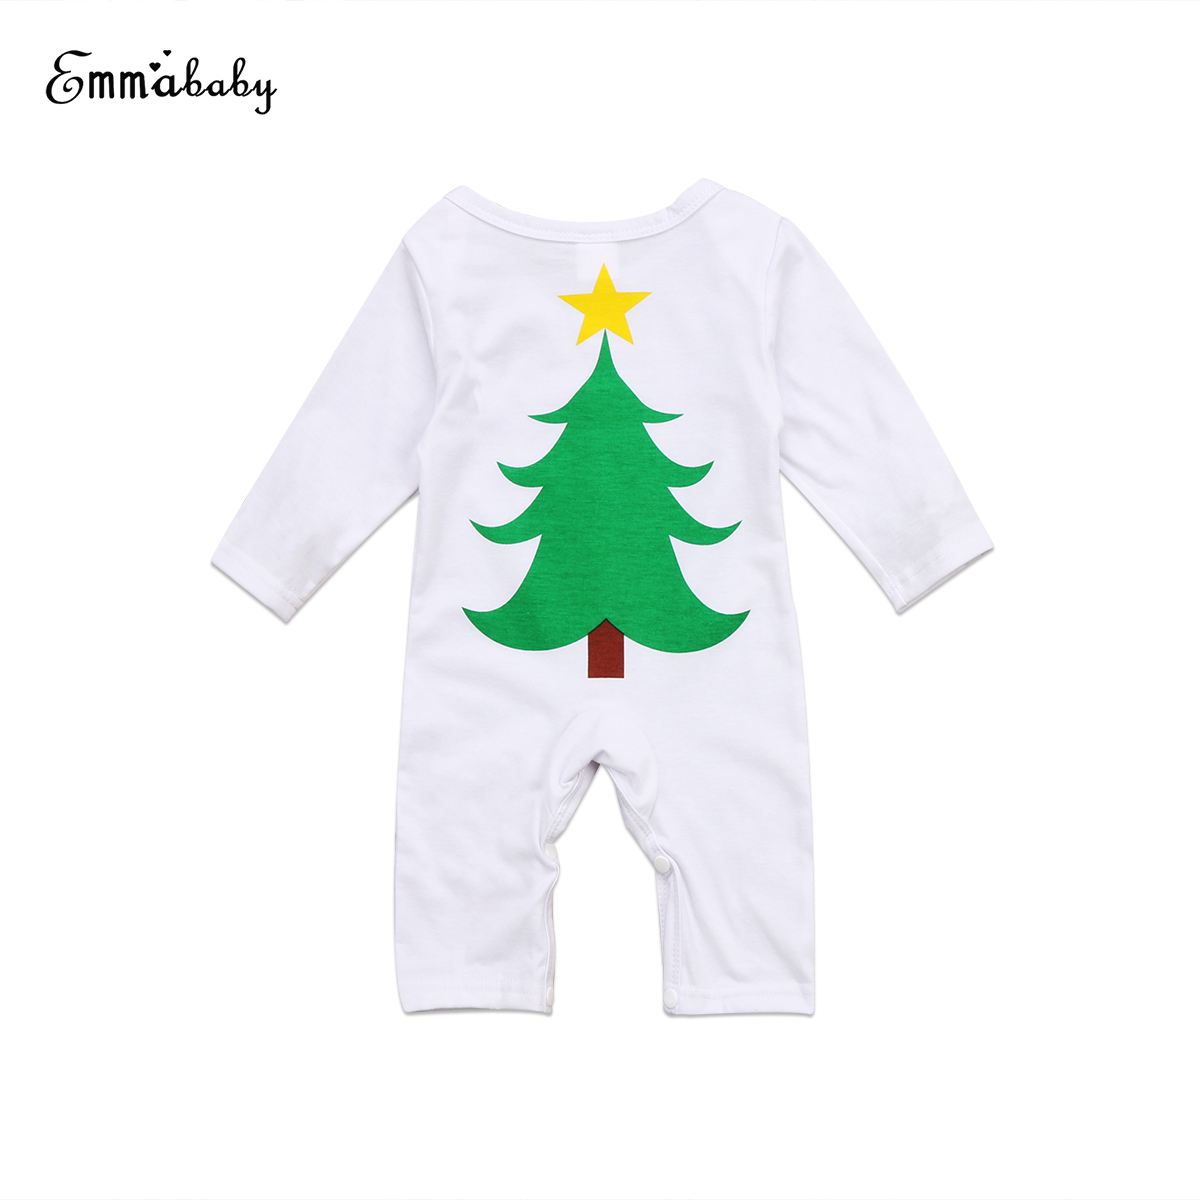 Cute Newborn Baby Girl Boy Romper 2017 New Christmas Tree Romper Long Sleeve Brief Casual Jumpsuit Set Clothes 2pcs set baby clothes set boy